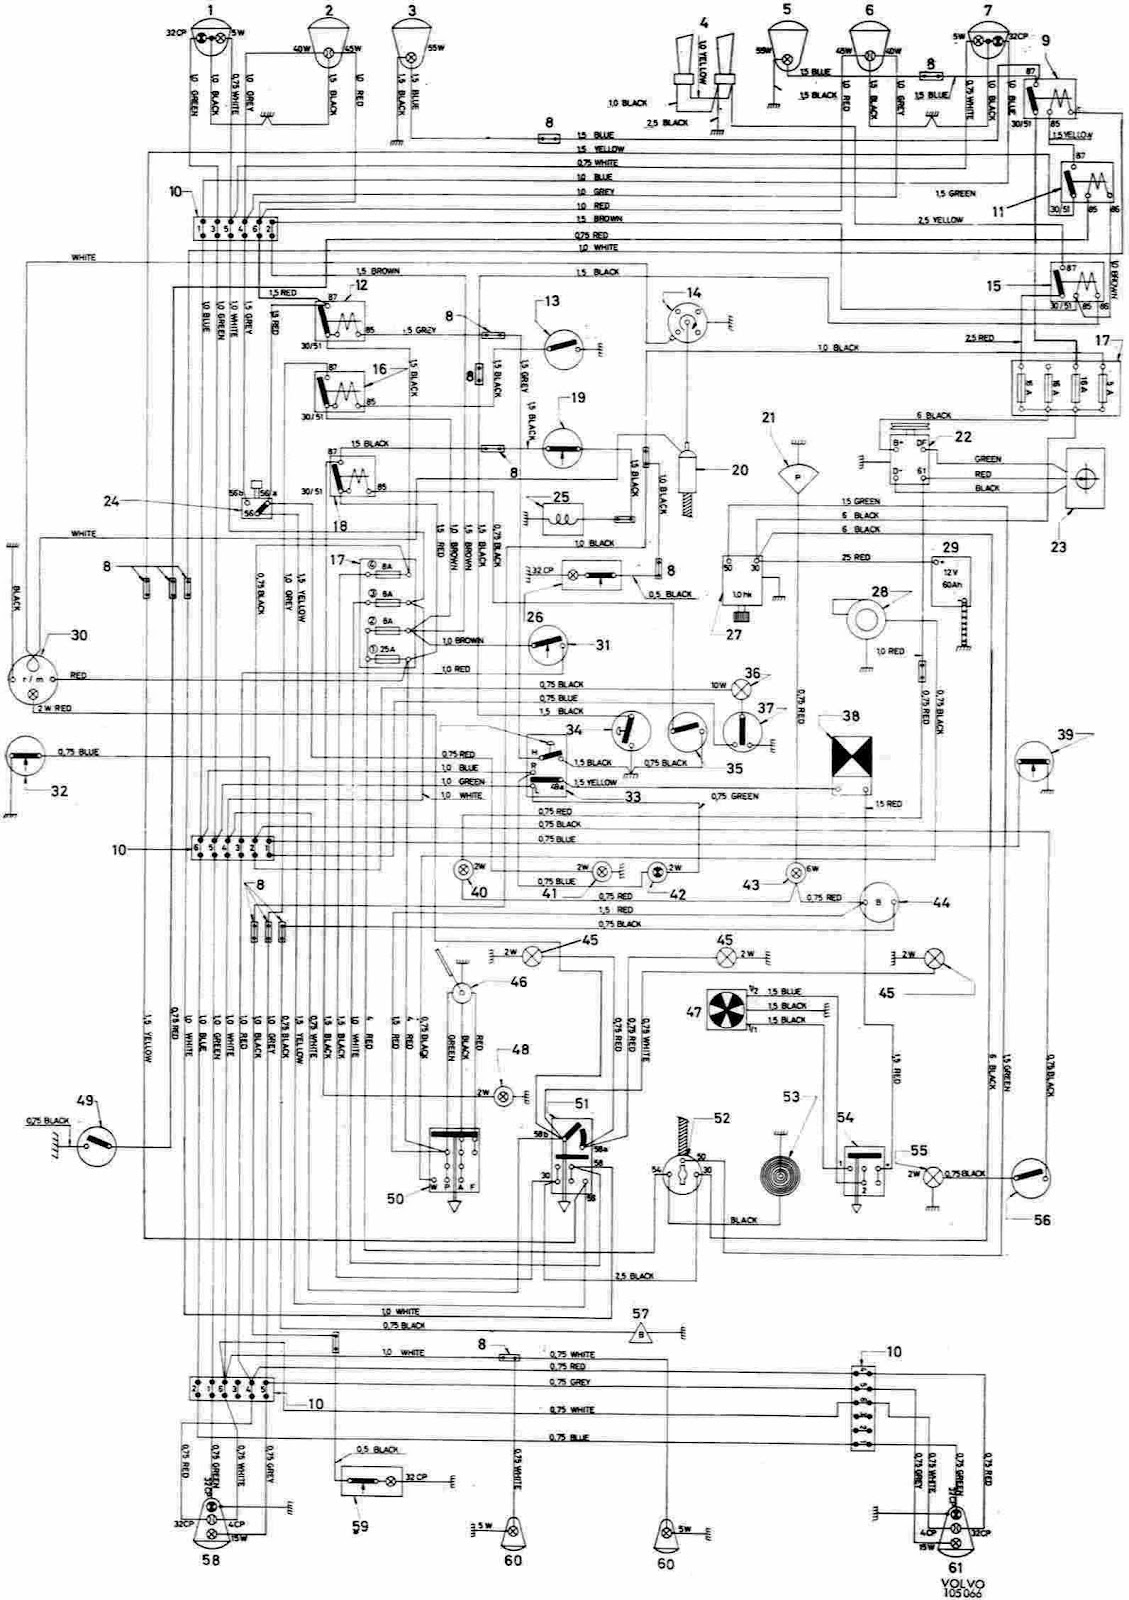 volvo 123 gt complete wiring diagram all about wiring diagrams